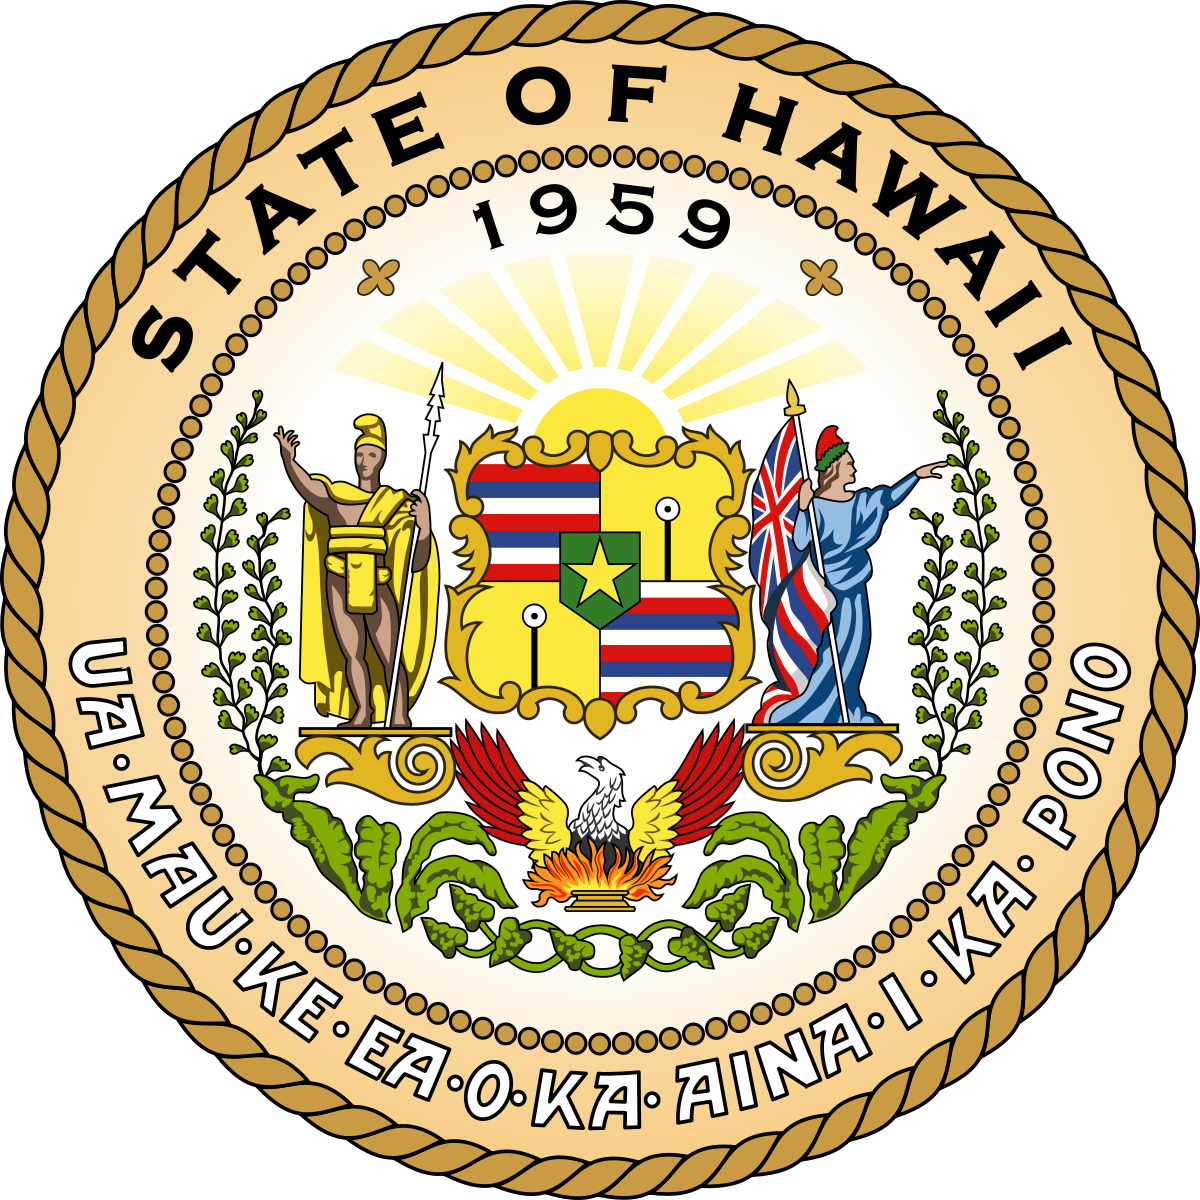 Beekeeping laws in Hawaii